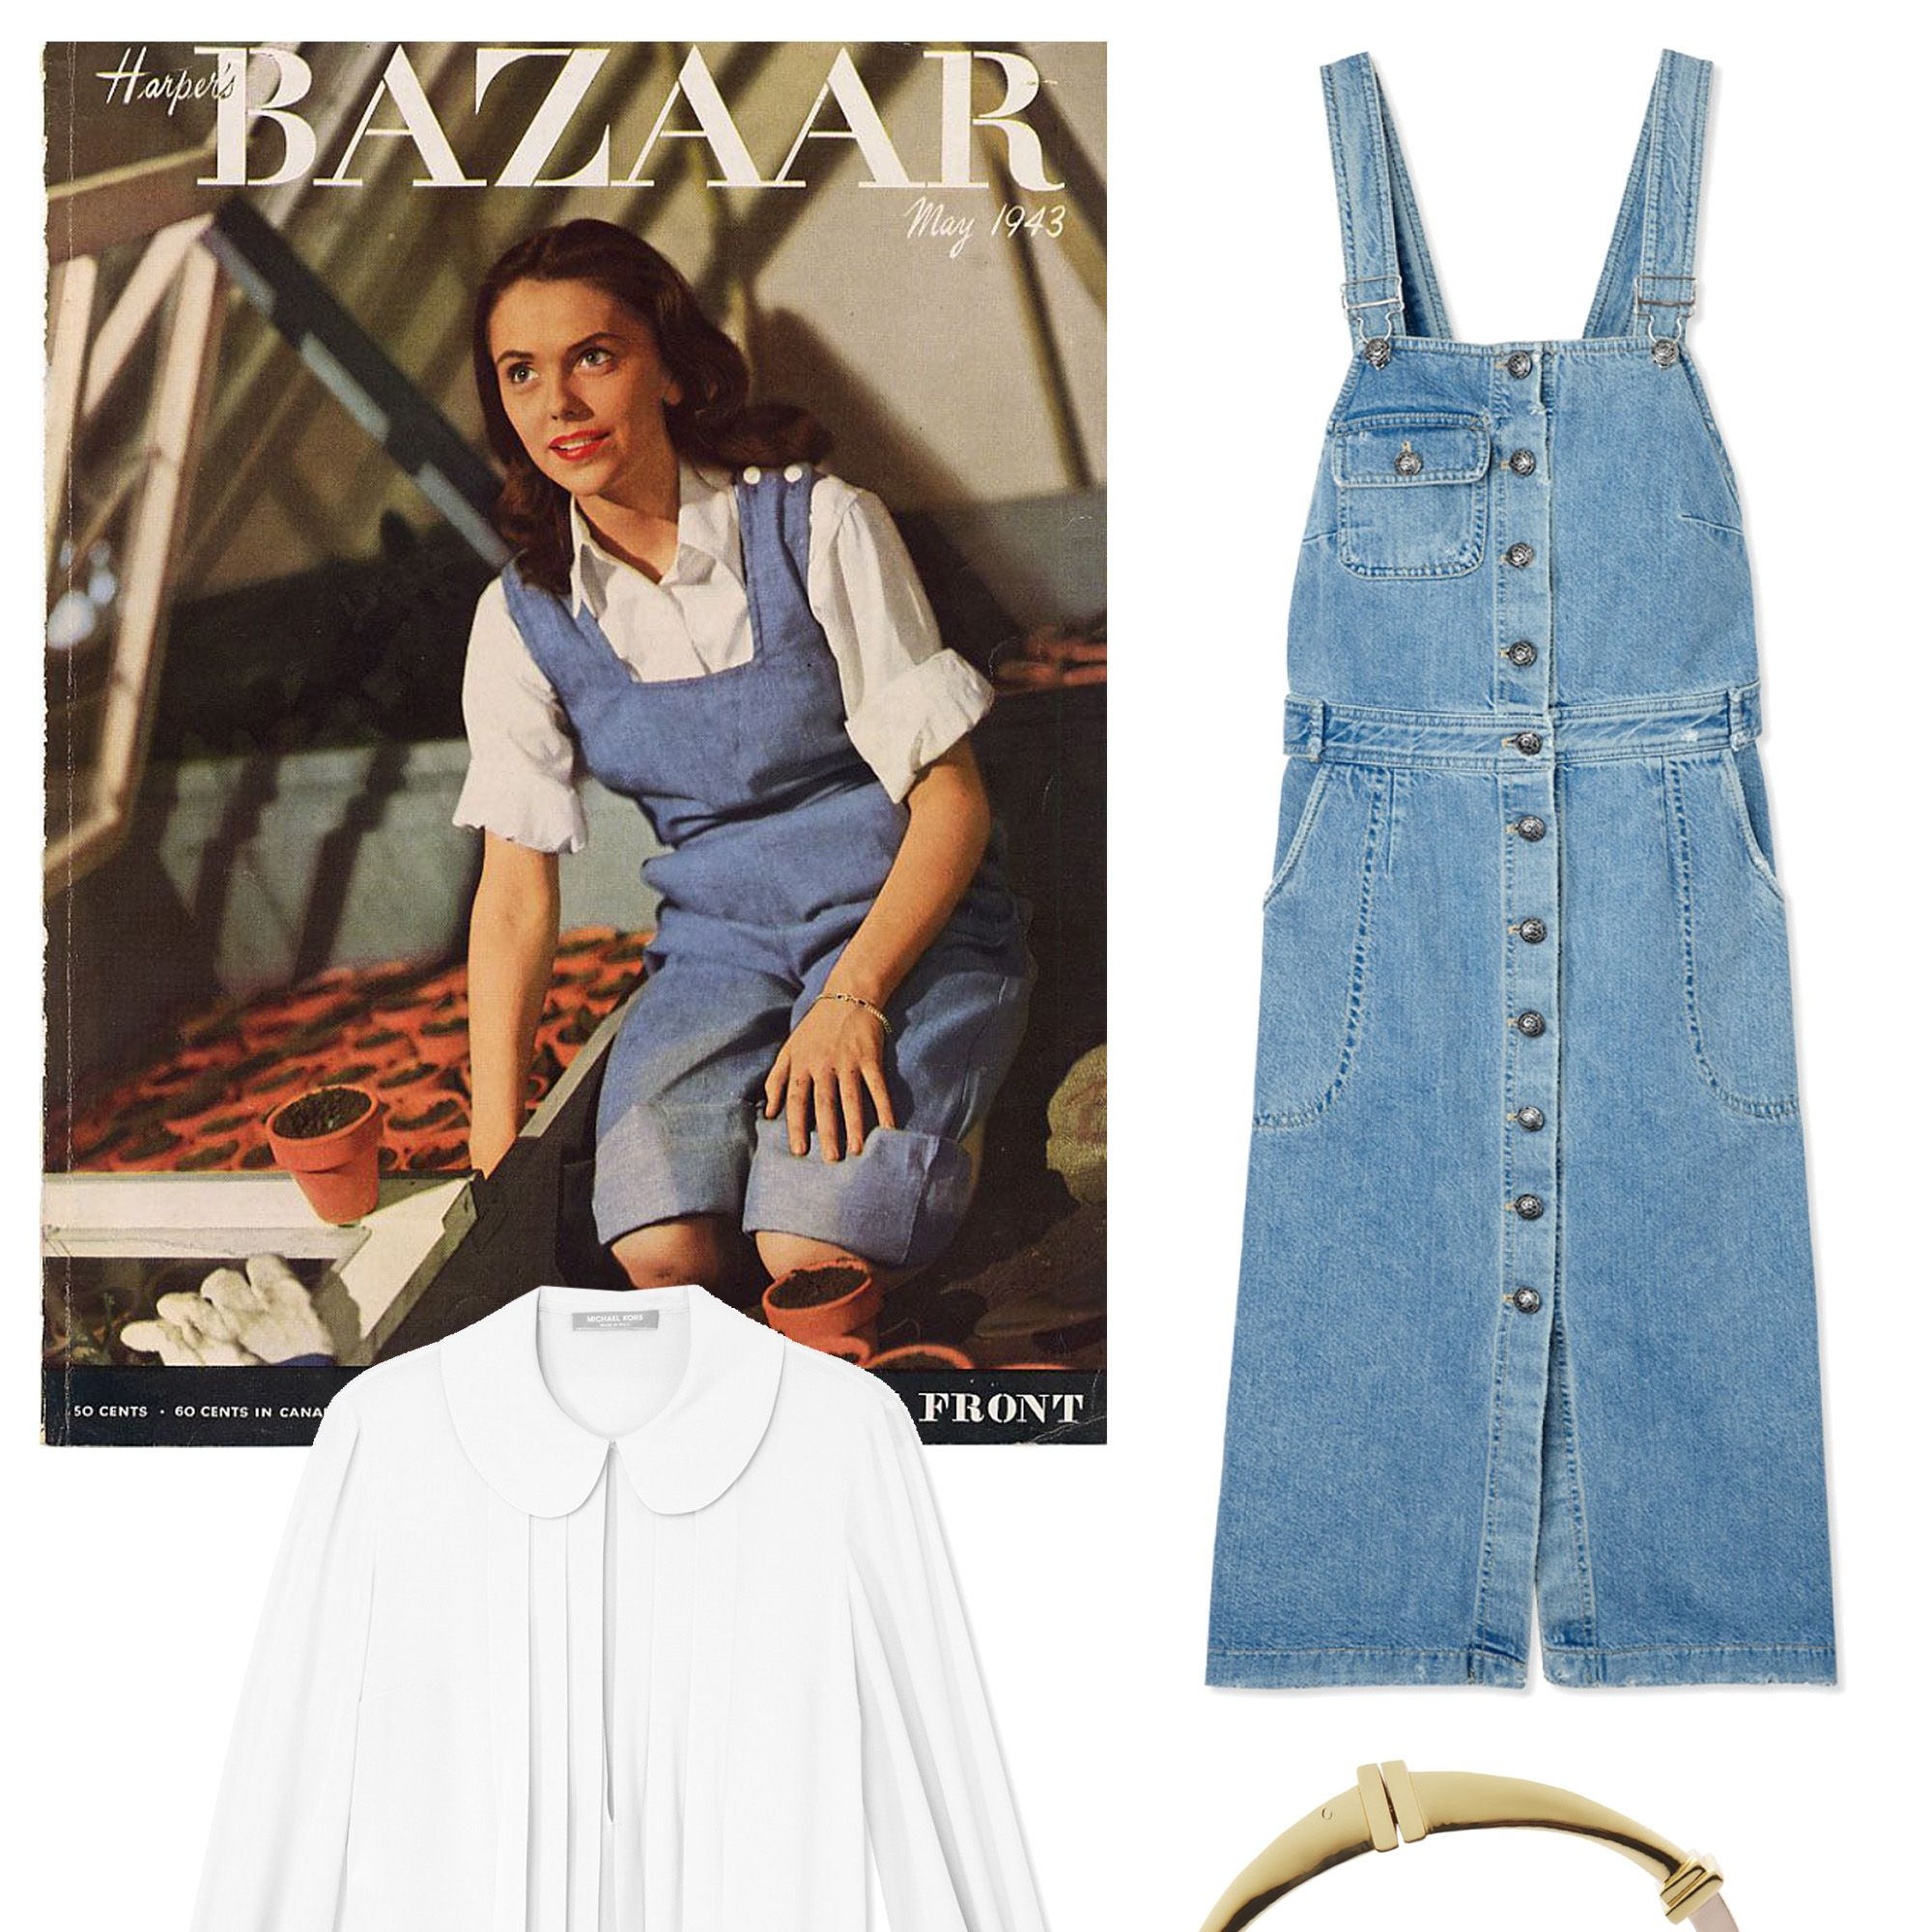 """A teenage Lauren Bacall celebrated garden-chic for Spring in classic overalls and Dorothy-style pigtails. Modernize this look by opting for an overall dress, a pleated georgette blouse and slip-on platforms. Add a cuff to accent your look. <strong>Shop The Look: </strong><em>Michael Kors blouse, $950, <a target=""""_blank"""" href=""""http://shop.harpersbazaar.com/designers/michael-kors/white-georgette-pleated-blouse/"""">ShopBAZAAR.com.</a>, Sea dress, $395, <a target=""""_blank"""" href=""""http://shop.harpersbazaar.com/designers/sea/denim-overalls-dress/"""">ShopBAZAAR.com</a>., Eddie Borgo cuff, $225, <a target=""""_blank"""" href=""""http://shop.harpersbazaar.com/designers/eddie-borgo/plinth-cuff/"""">ShopBAZAAR.com.</a>, Stella McCartney sneakers, $565, <a target=""""_blank"""" href=""""http://shop.harpersbazaar.com/designers/stella-mccartney/lace-platform-slip-on-sneakers/"""">ShopBAZAAR.com.</a></em>"""